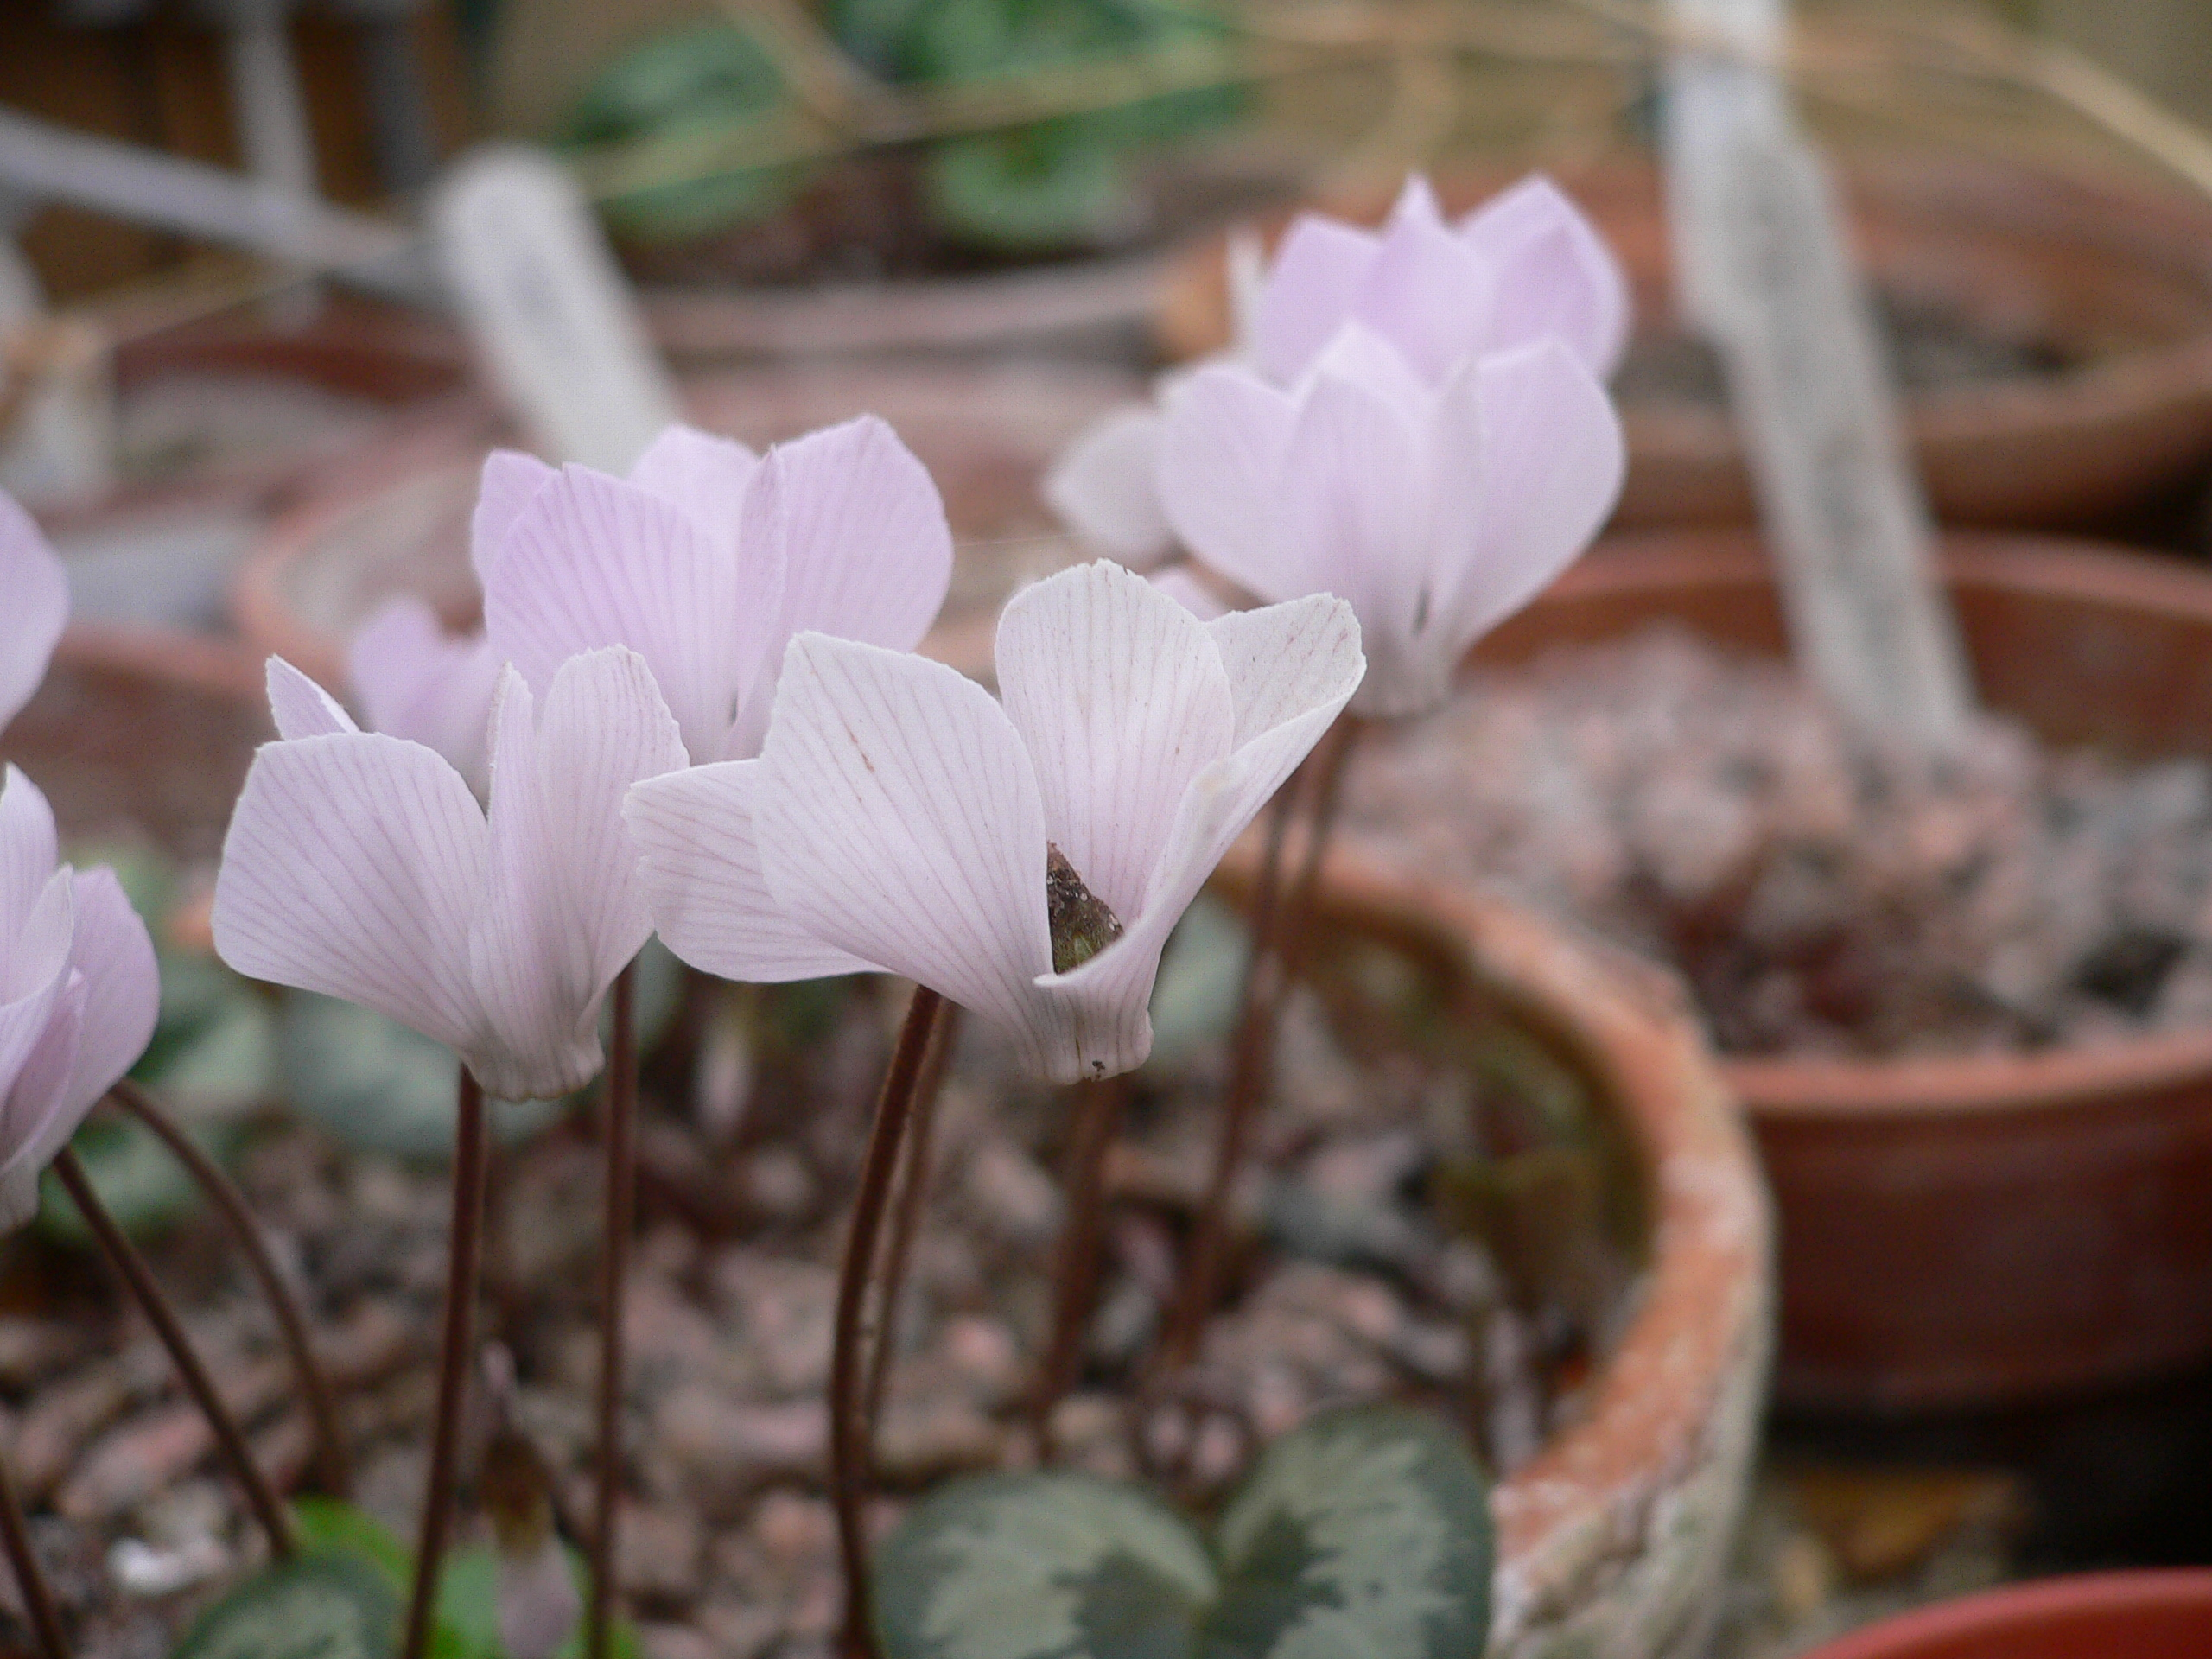 Циклaмeн Интaминaтум(Cyclamen intaminatum)